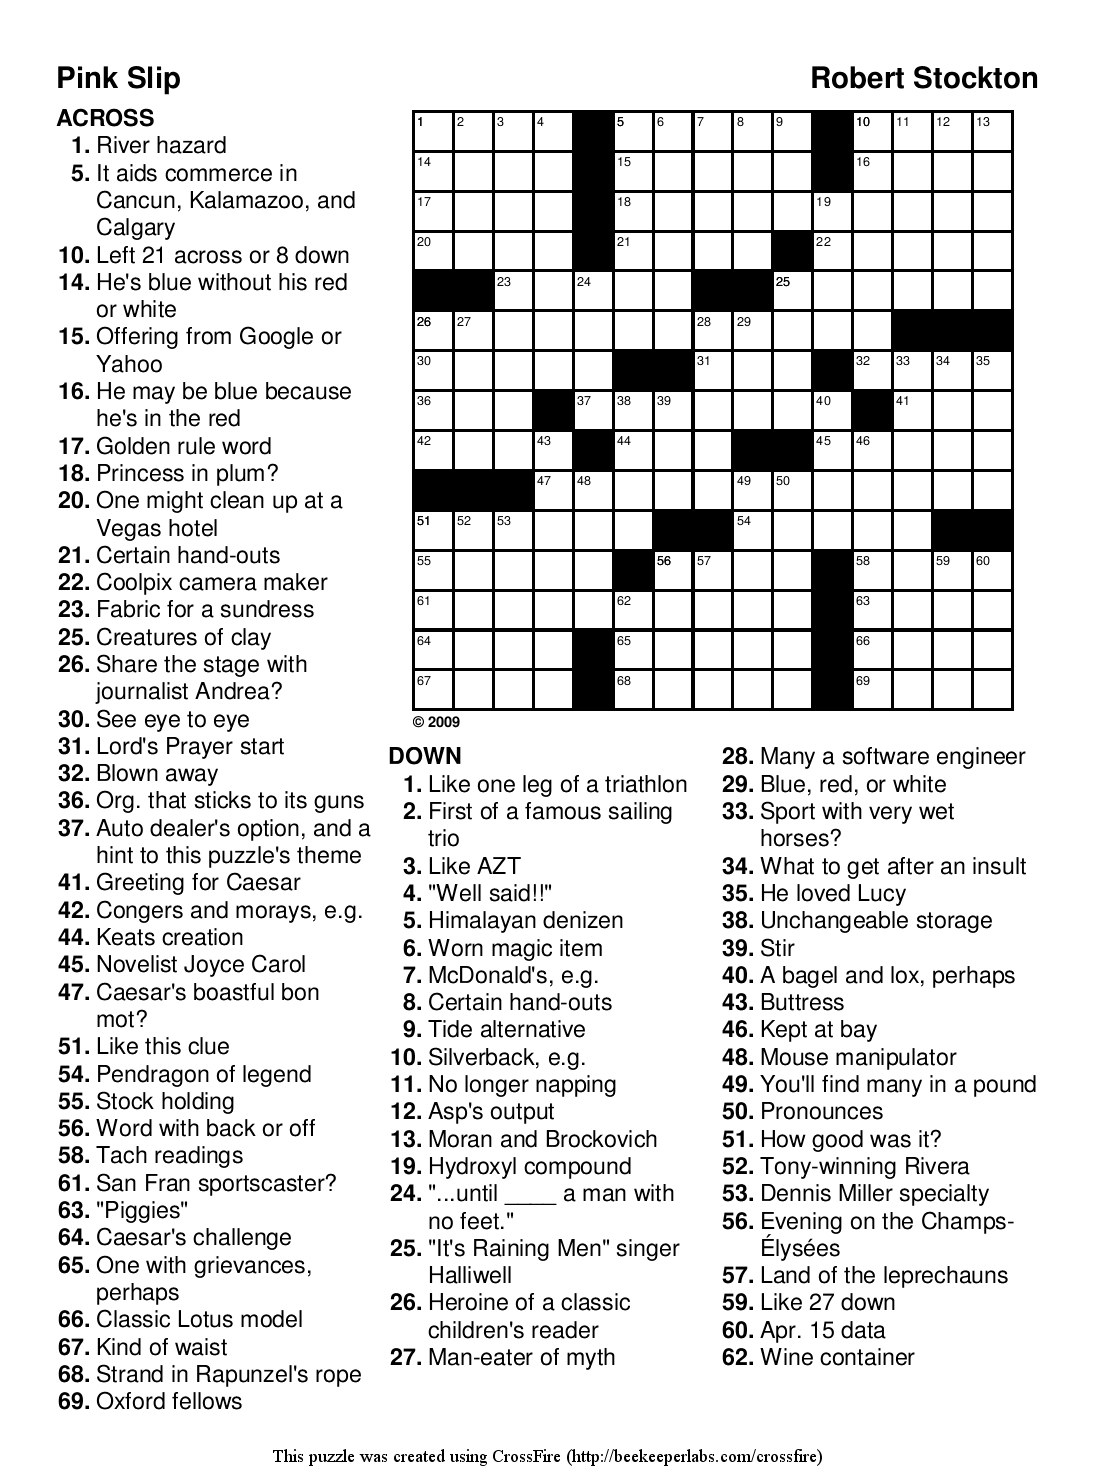 Free Printable Christmas Crossword Puzzles For Adults | Free Printables - Printable Holiday Crossword Puzzles For Adults With Answers